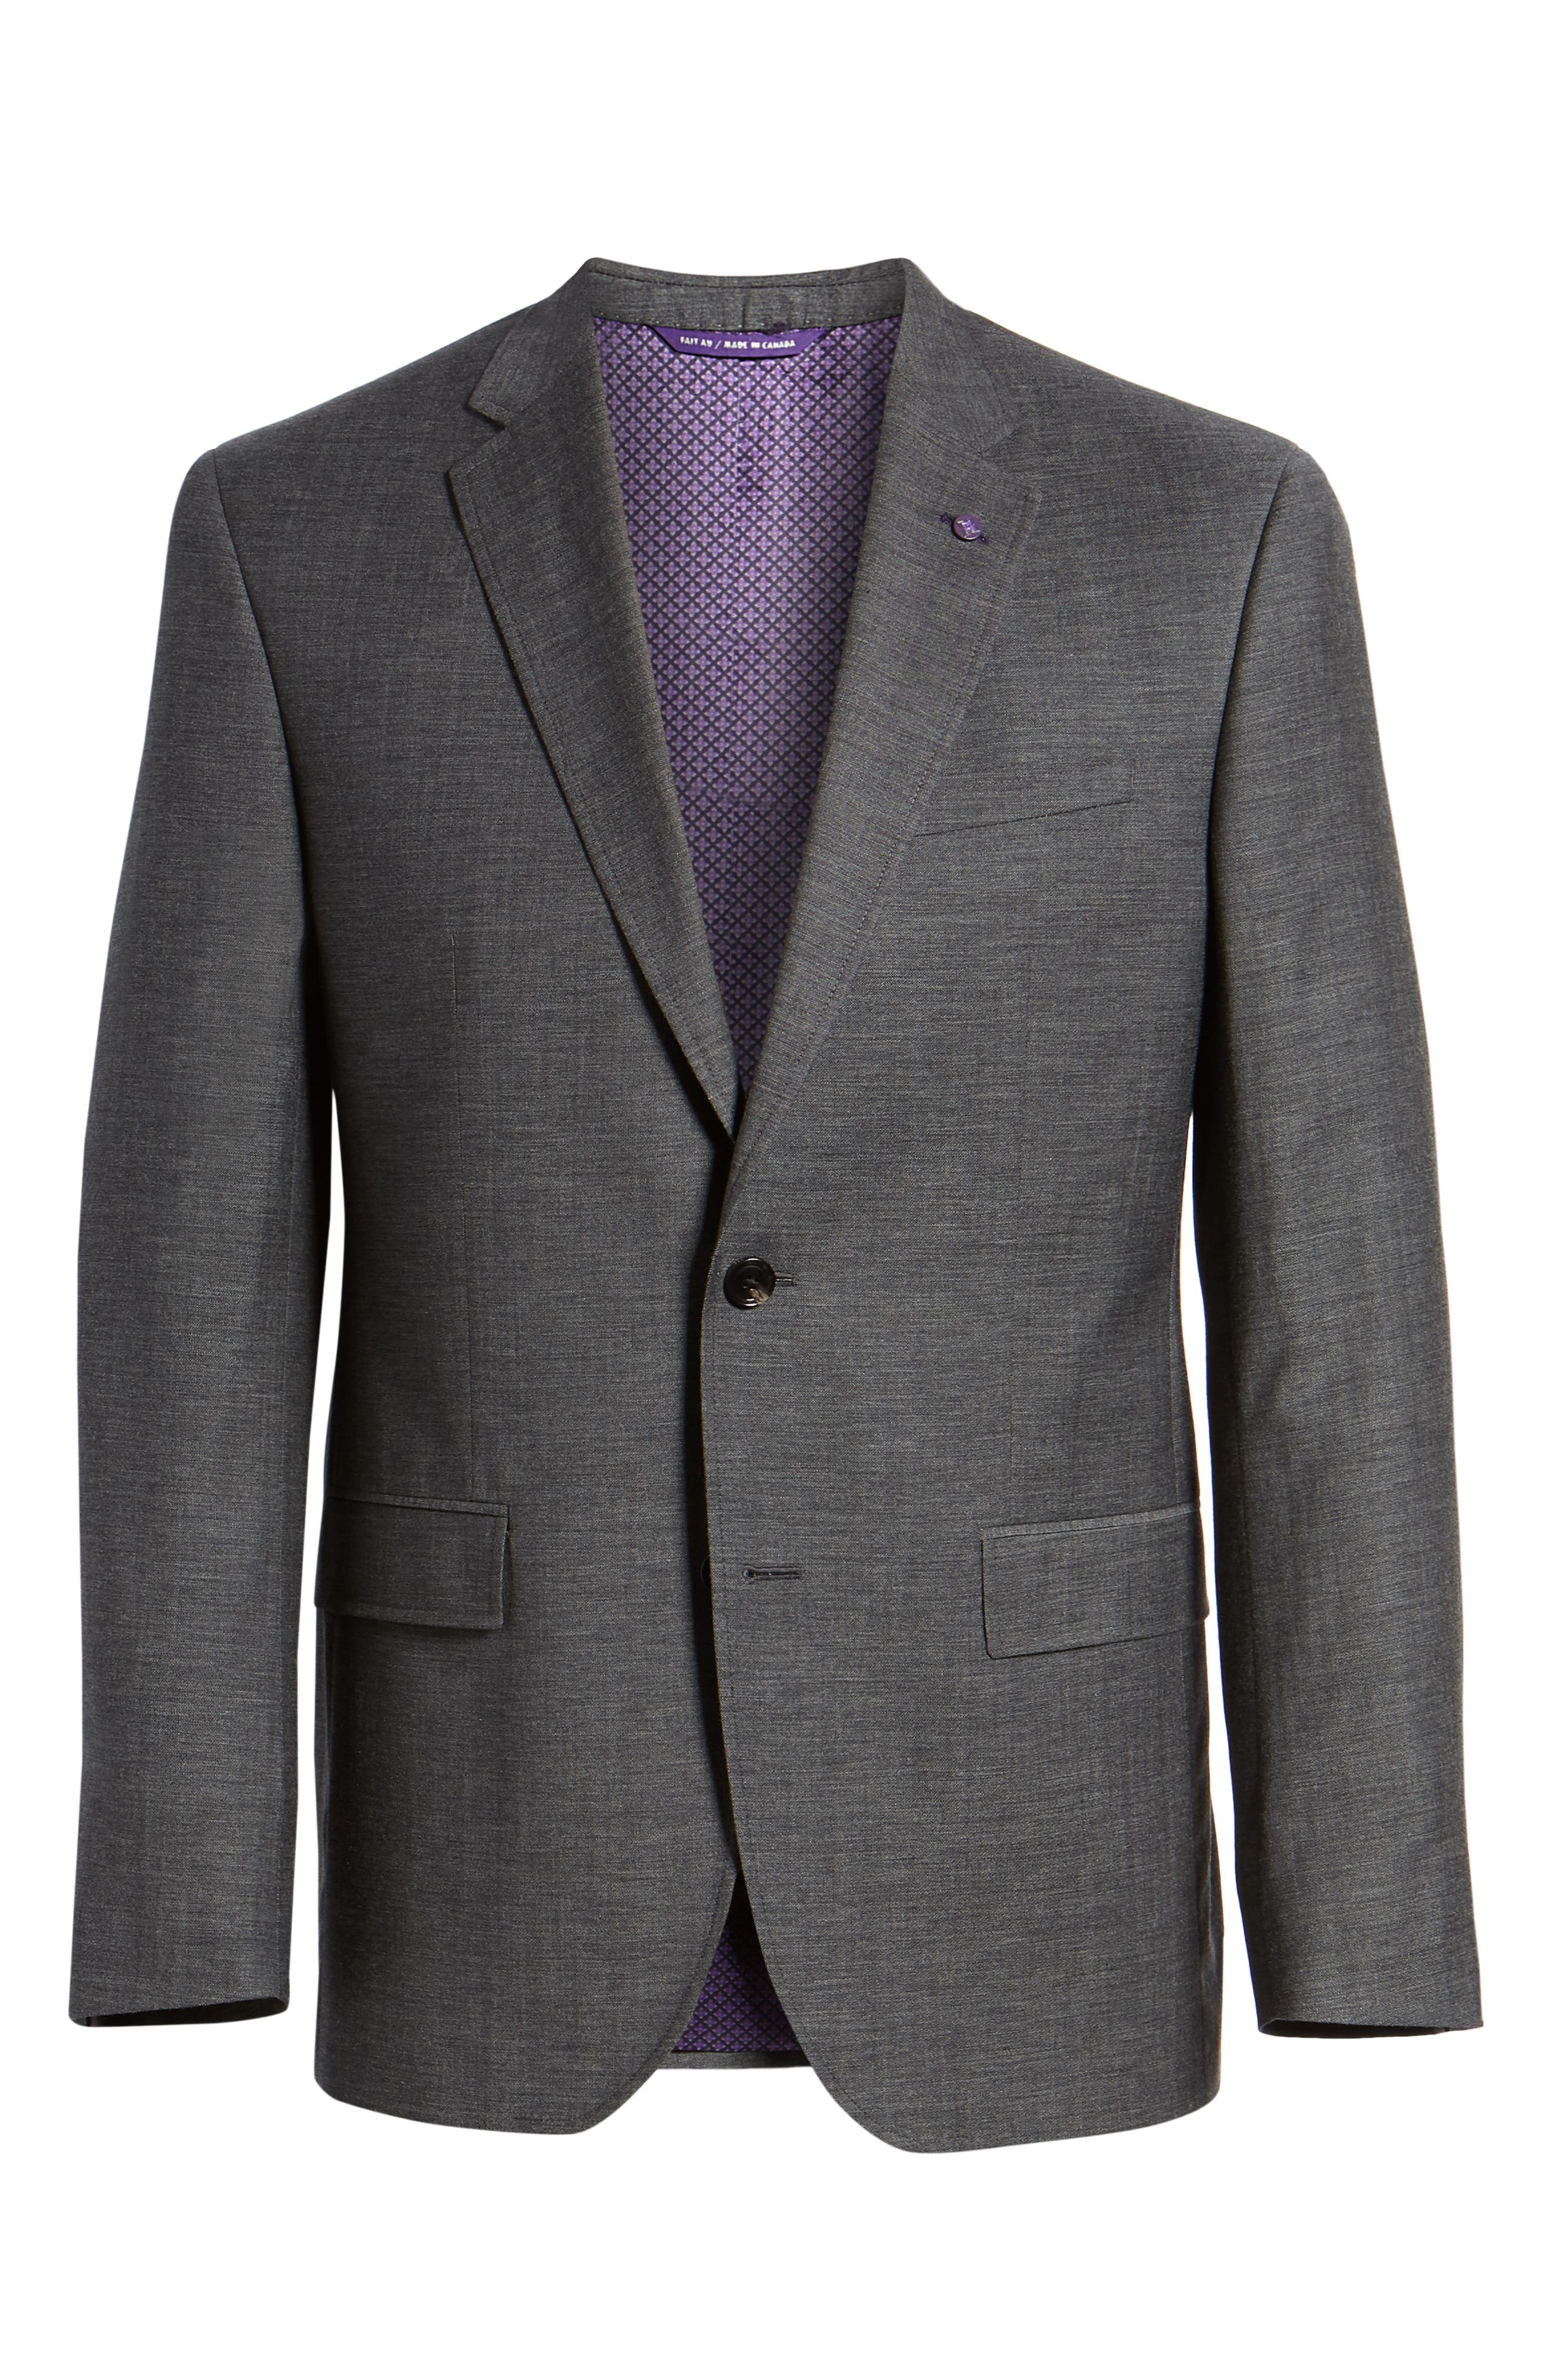 Jay Trim Fit Heathered Wool & Cotton Sport Coat,                             Alternate thumbnail 5, color,                             020